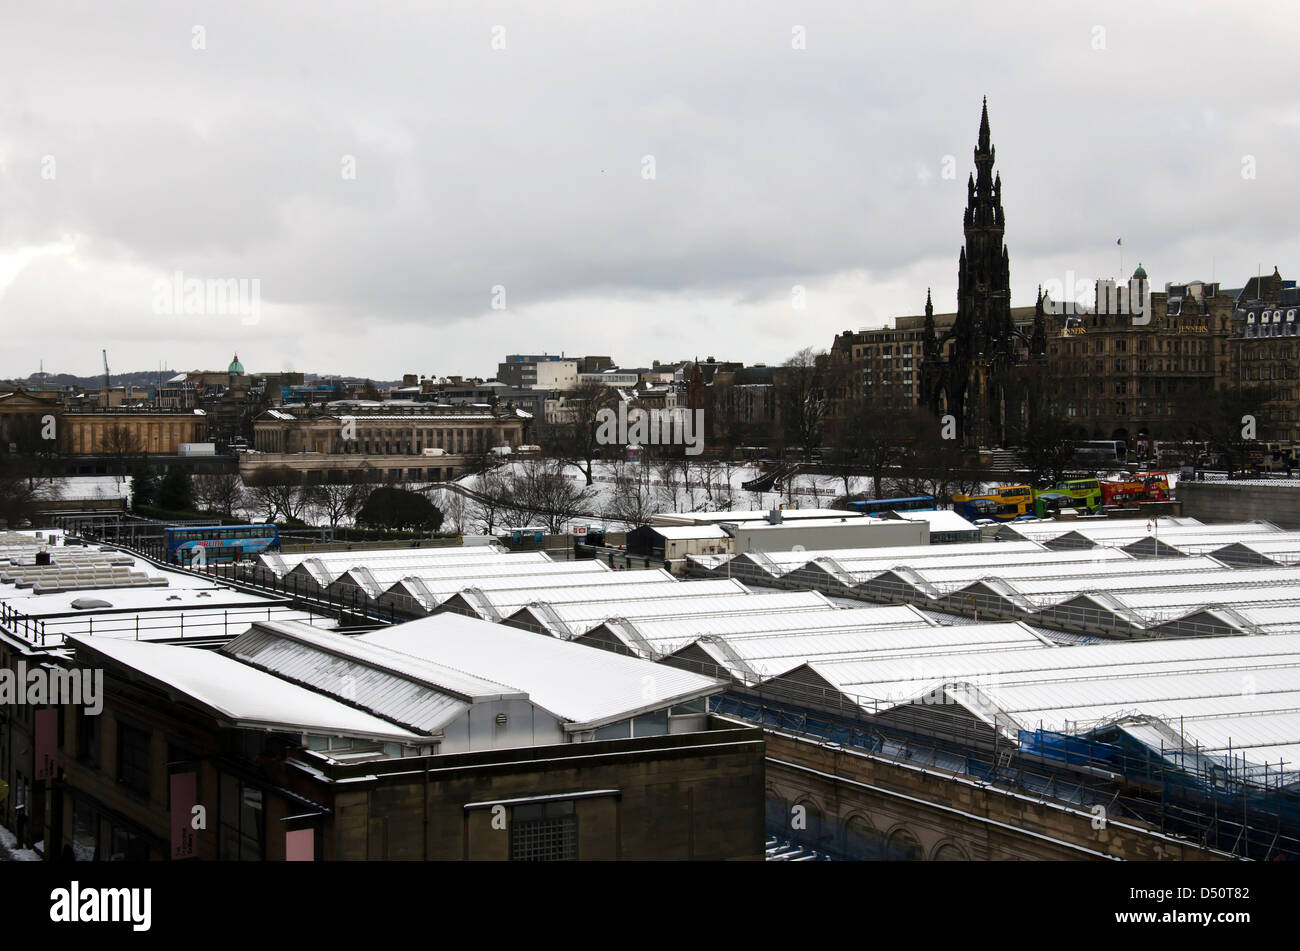 Edinburgh in the snow: looking over the roof of the snow-covered Waverley Station towards Princes Street. - Stock Image